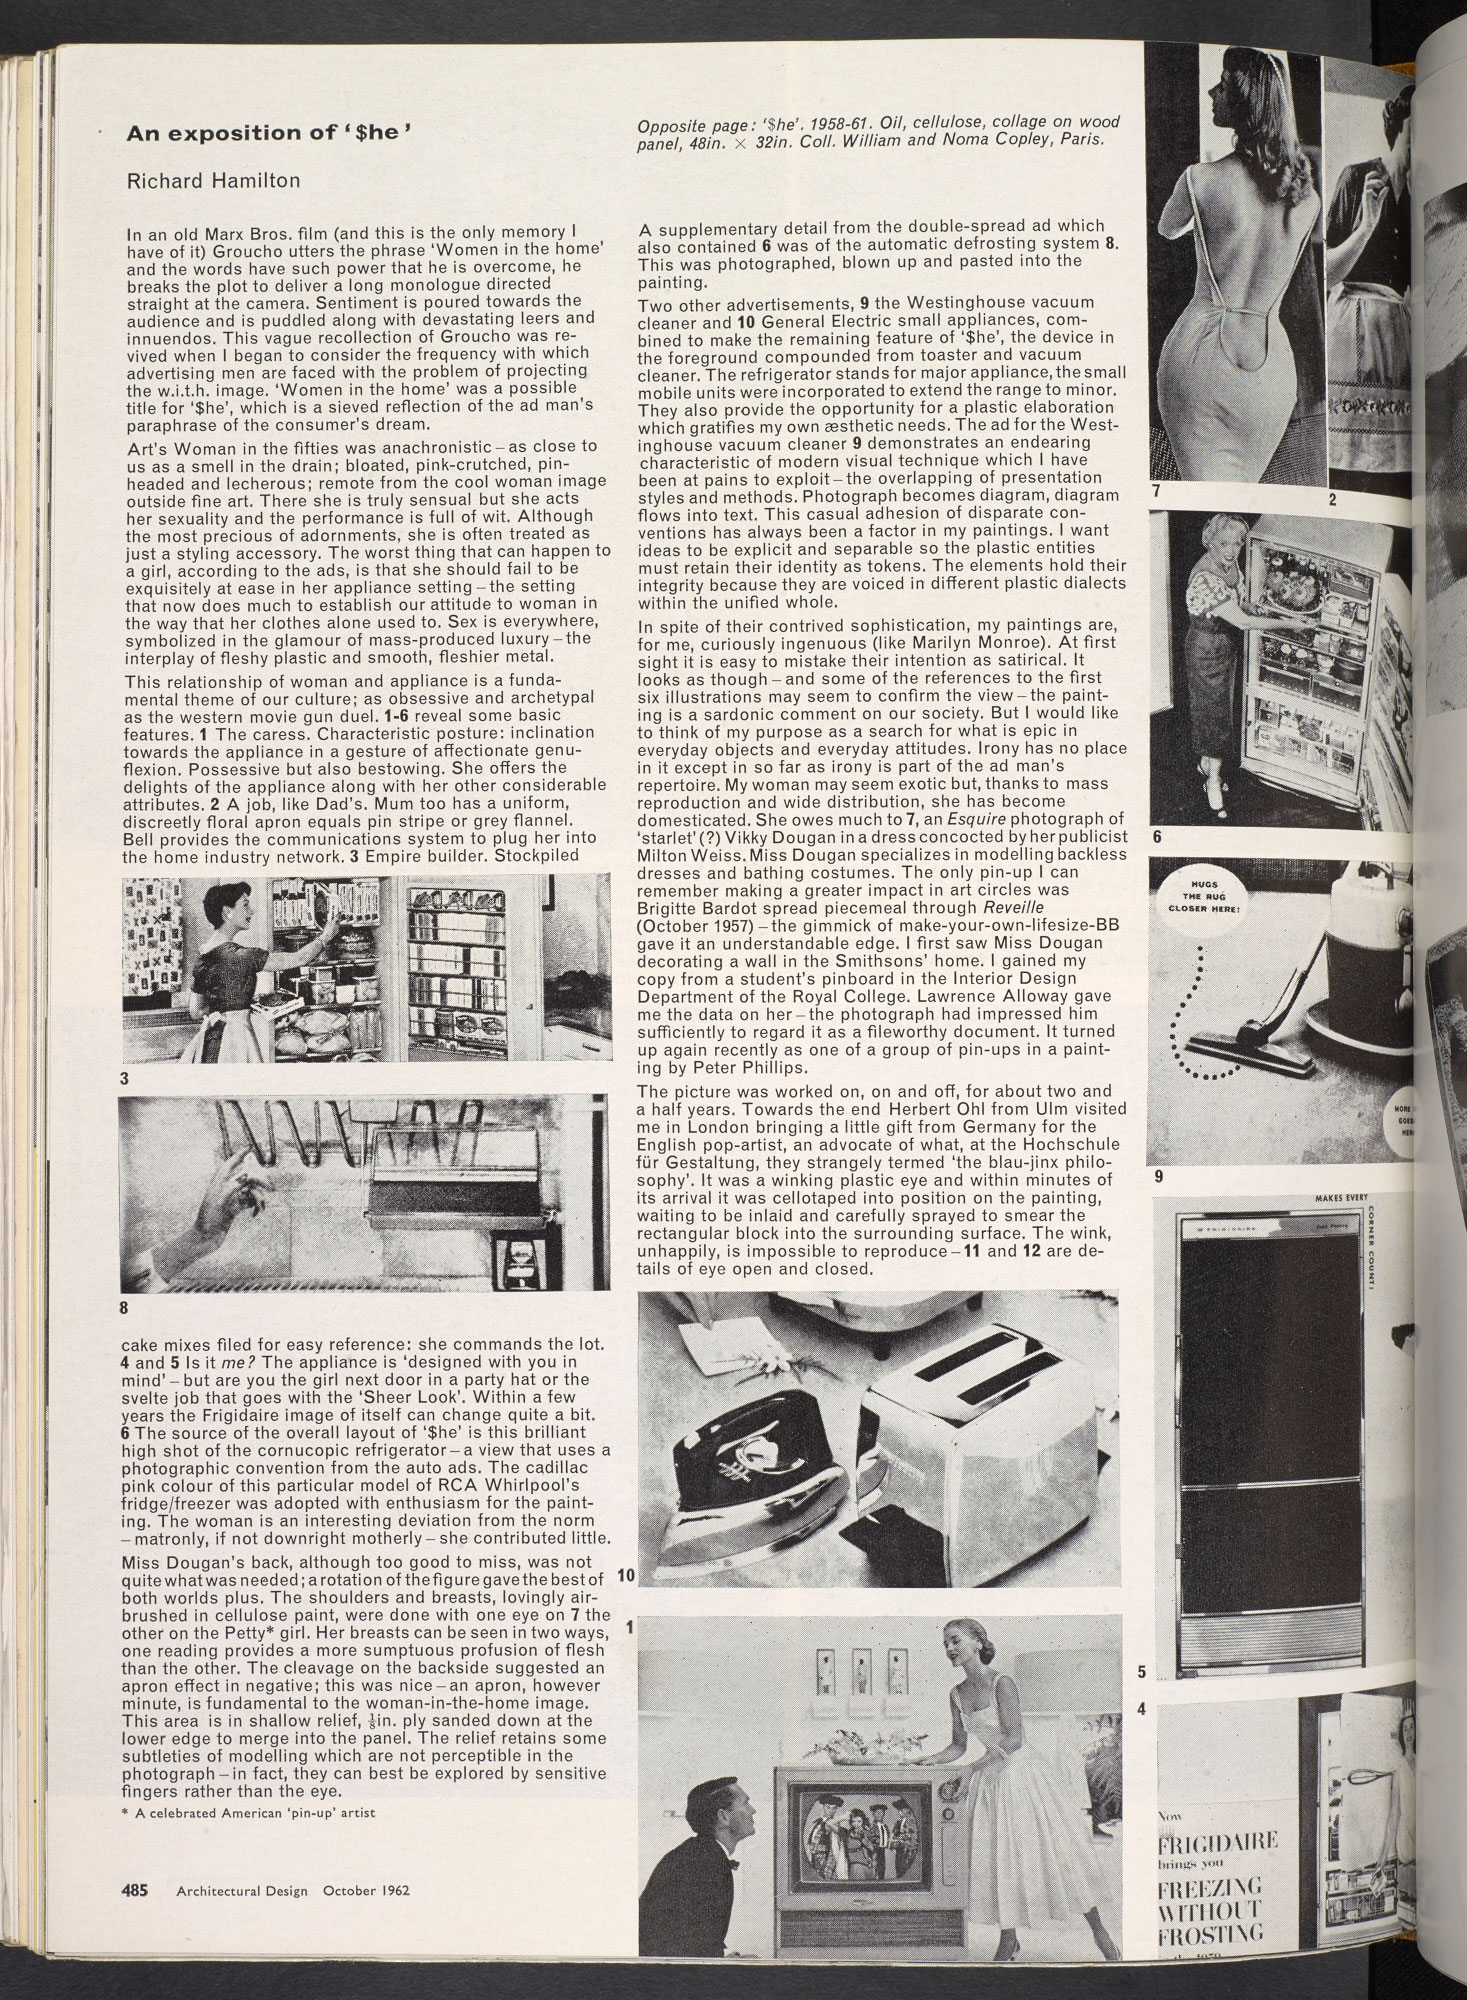 "'An exposition of ""$he""' by Richard Hamilton, from Architectural Design"